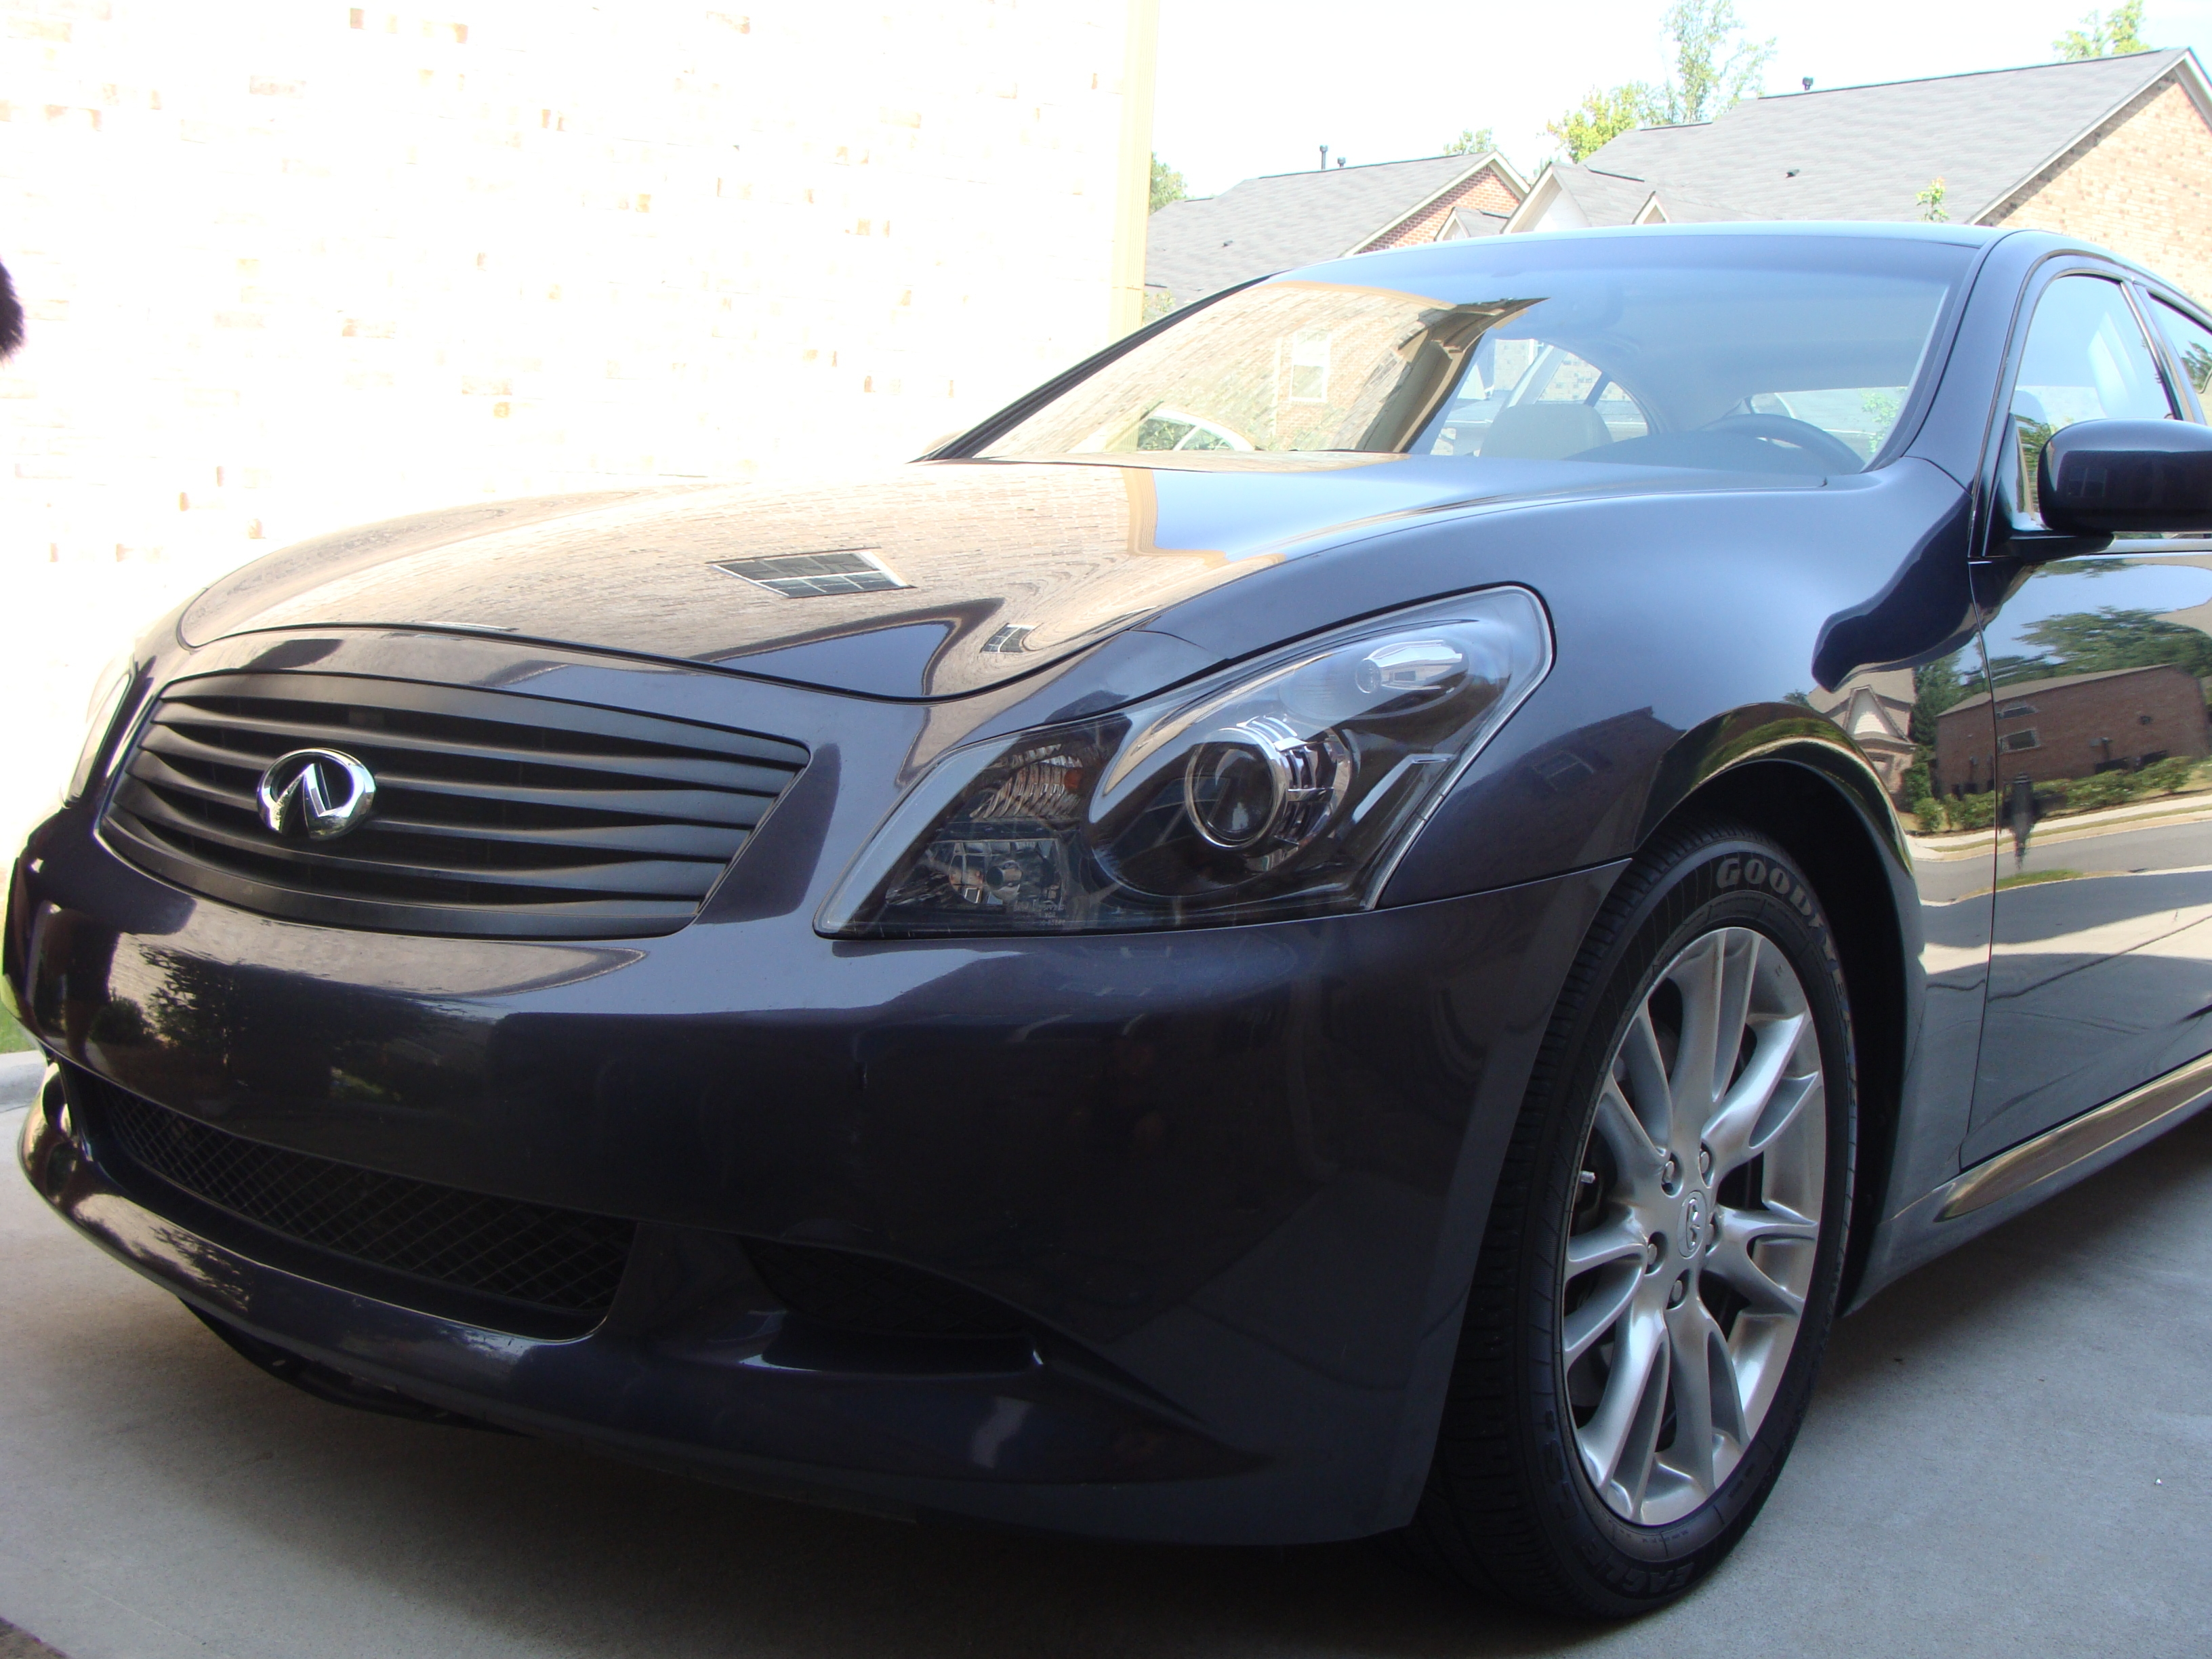 vqpowahh 39 s 2007 infiniti g g35 sport sedan 4d in johns. Black Bedroom Furniture Sets. Home Design Ideas